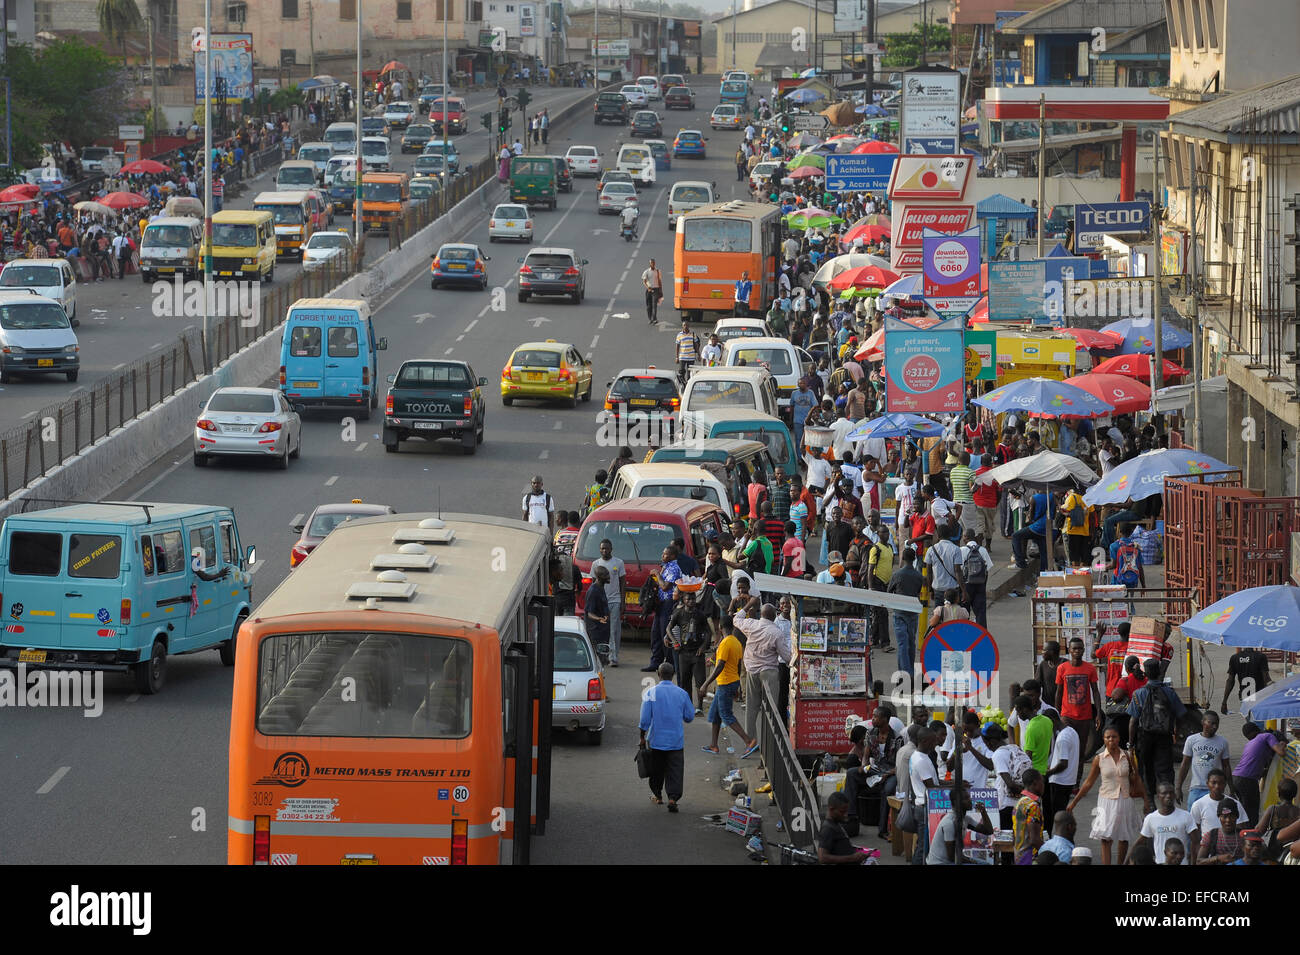 Main thoroughfare in downtown Accra, Ghana, West Africa. - Stock Image